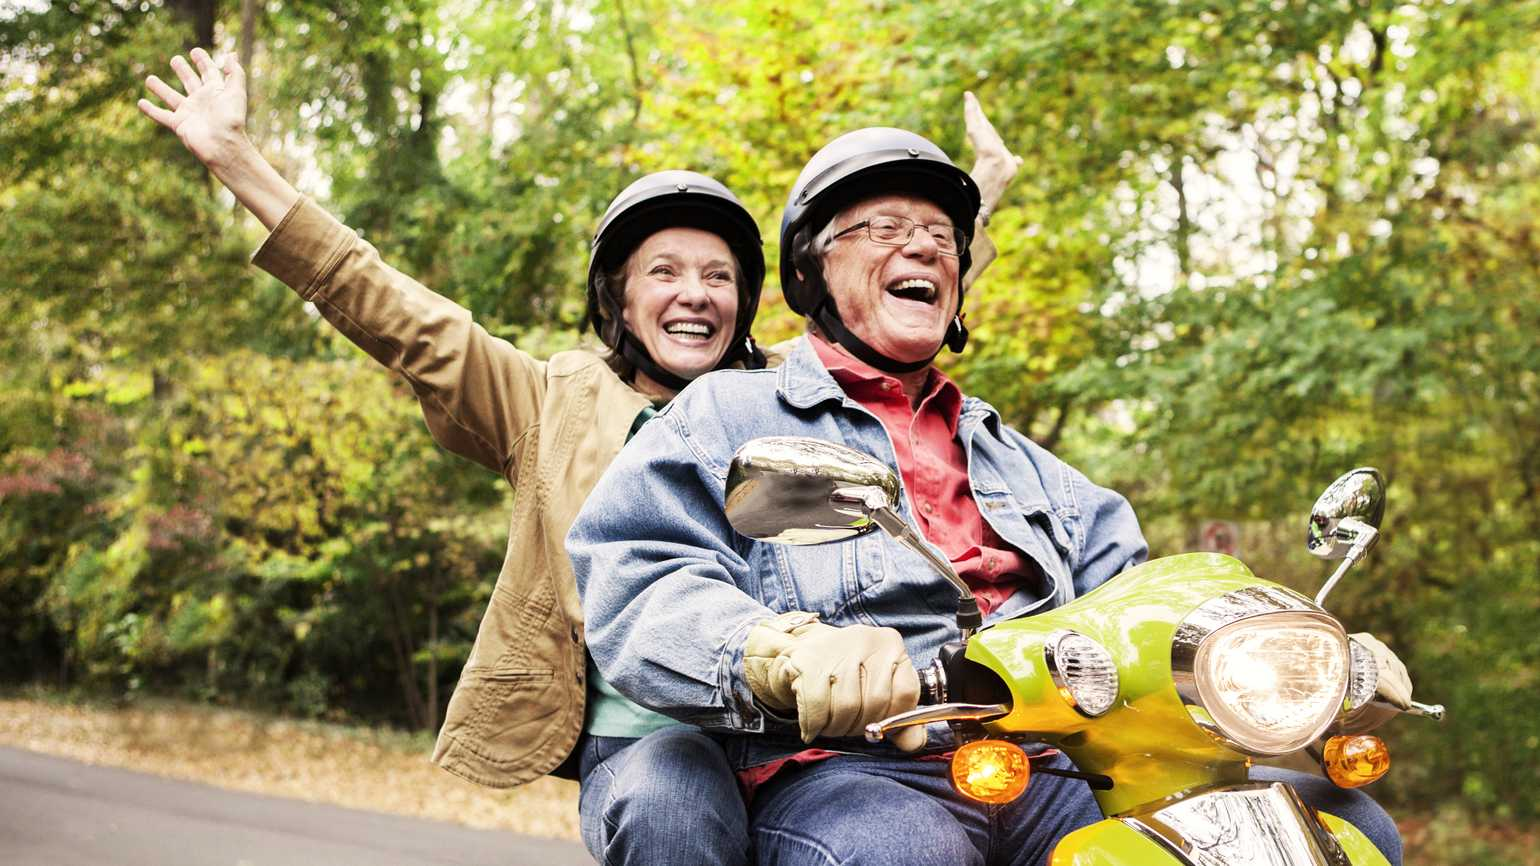 A retired couple having a blast on a motorcycle through the woods.